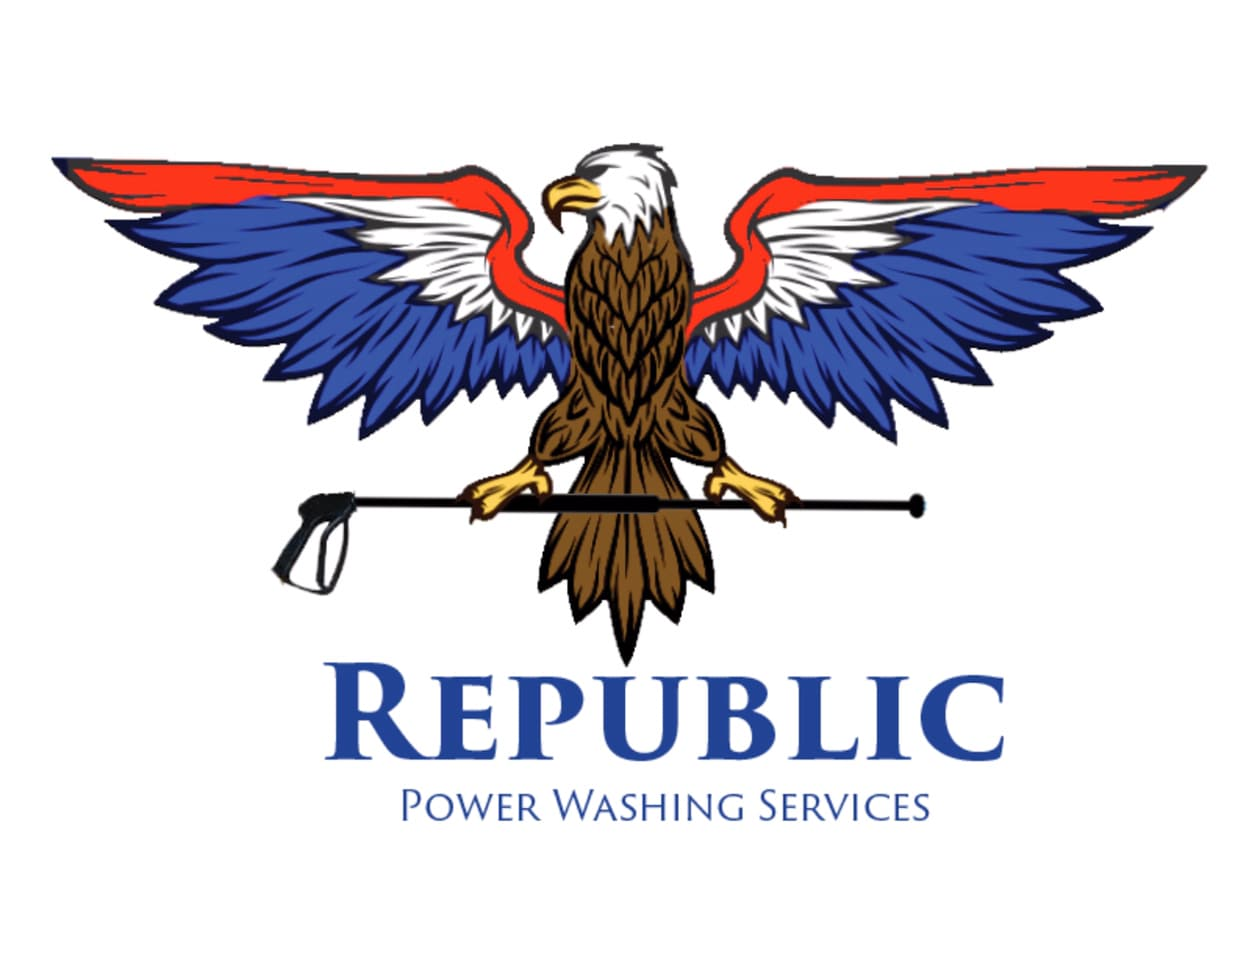 Republic Power Washing Services, LLC